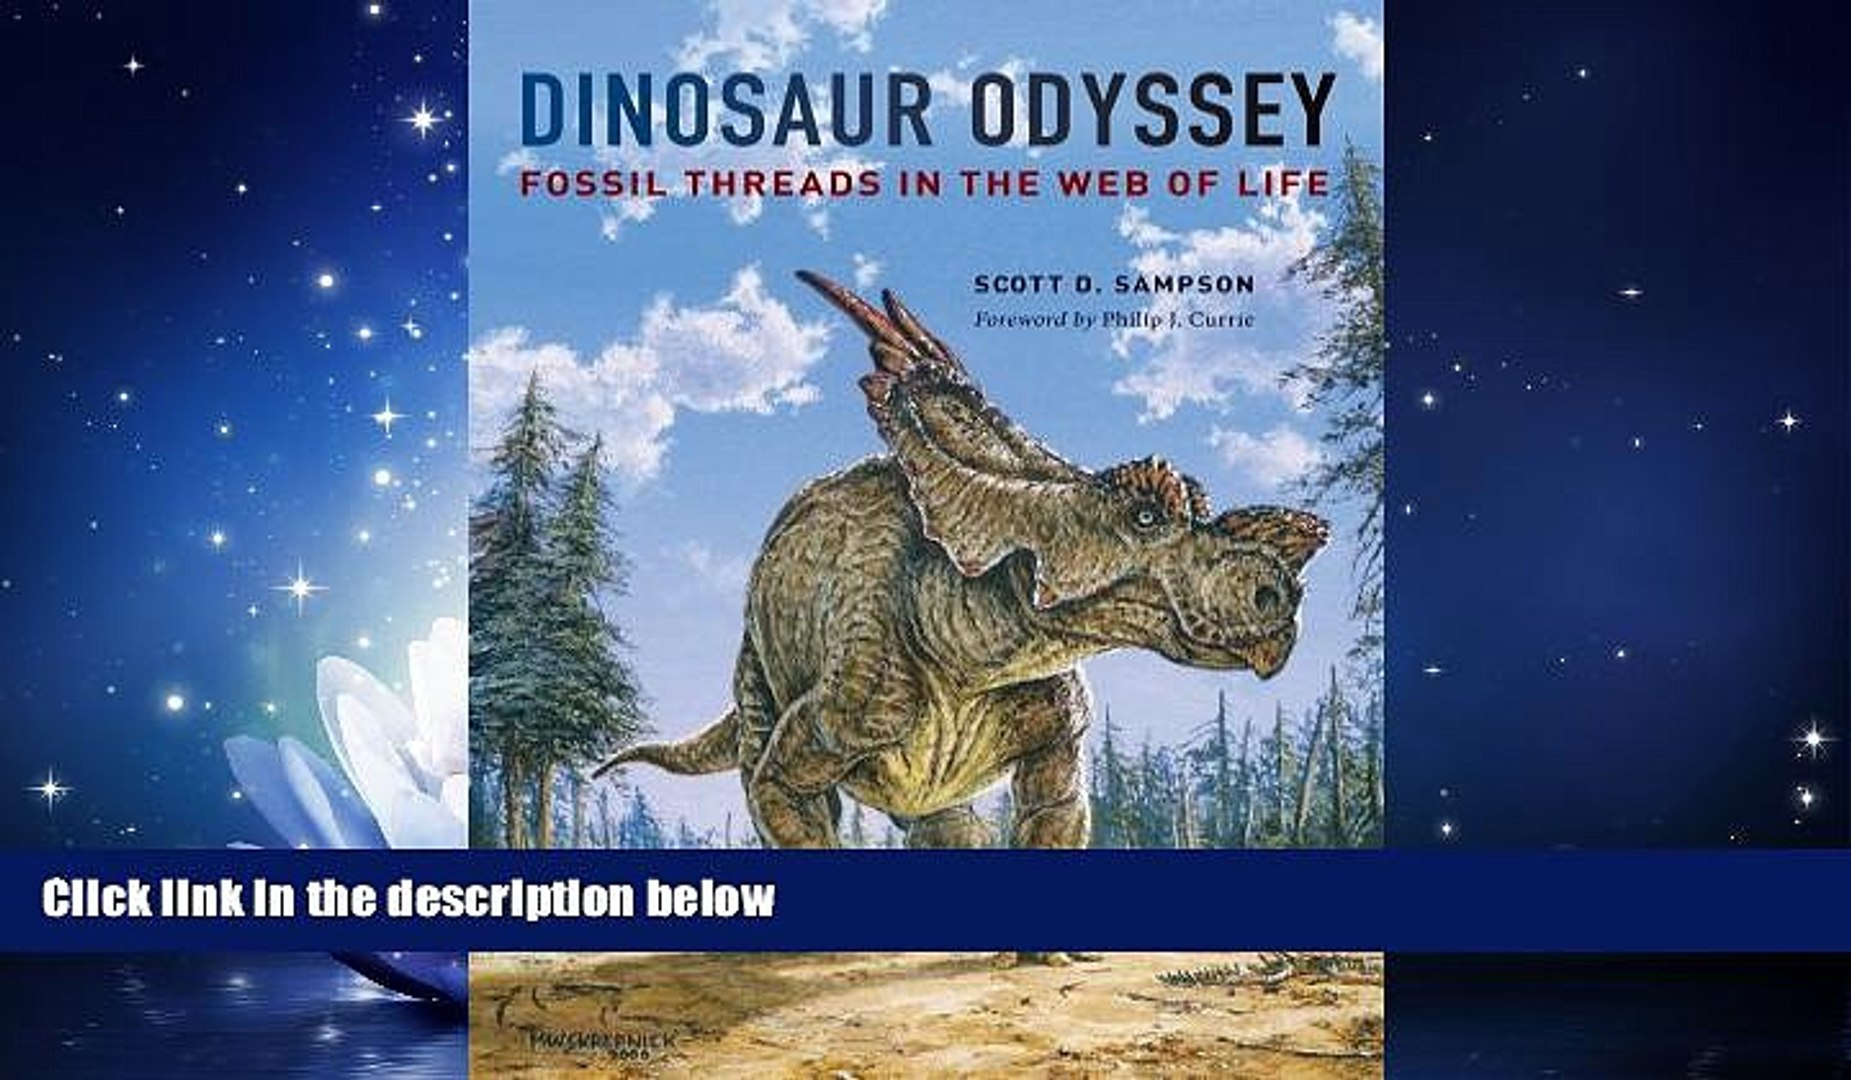 Dinosaur Odyssey Fossil Threads in the Web of Life